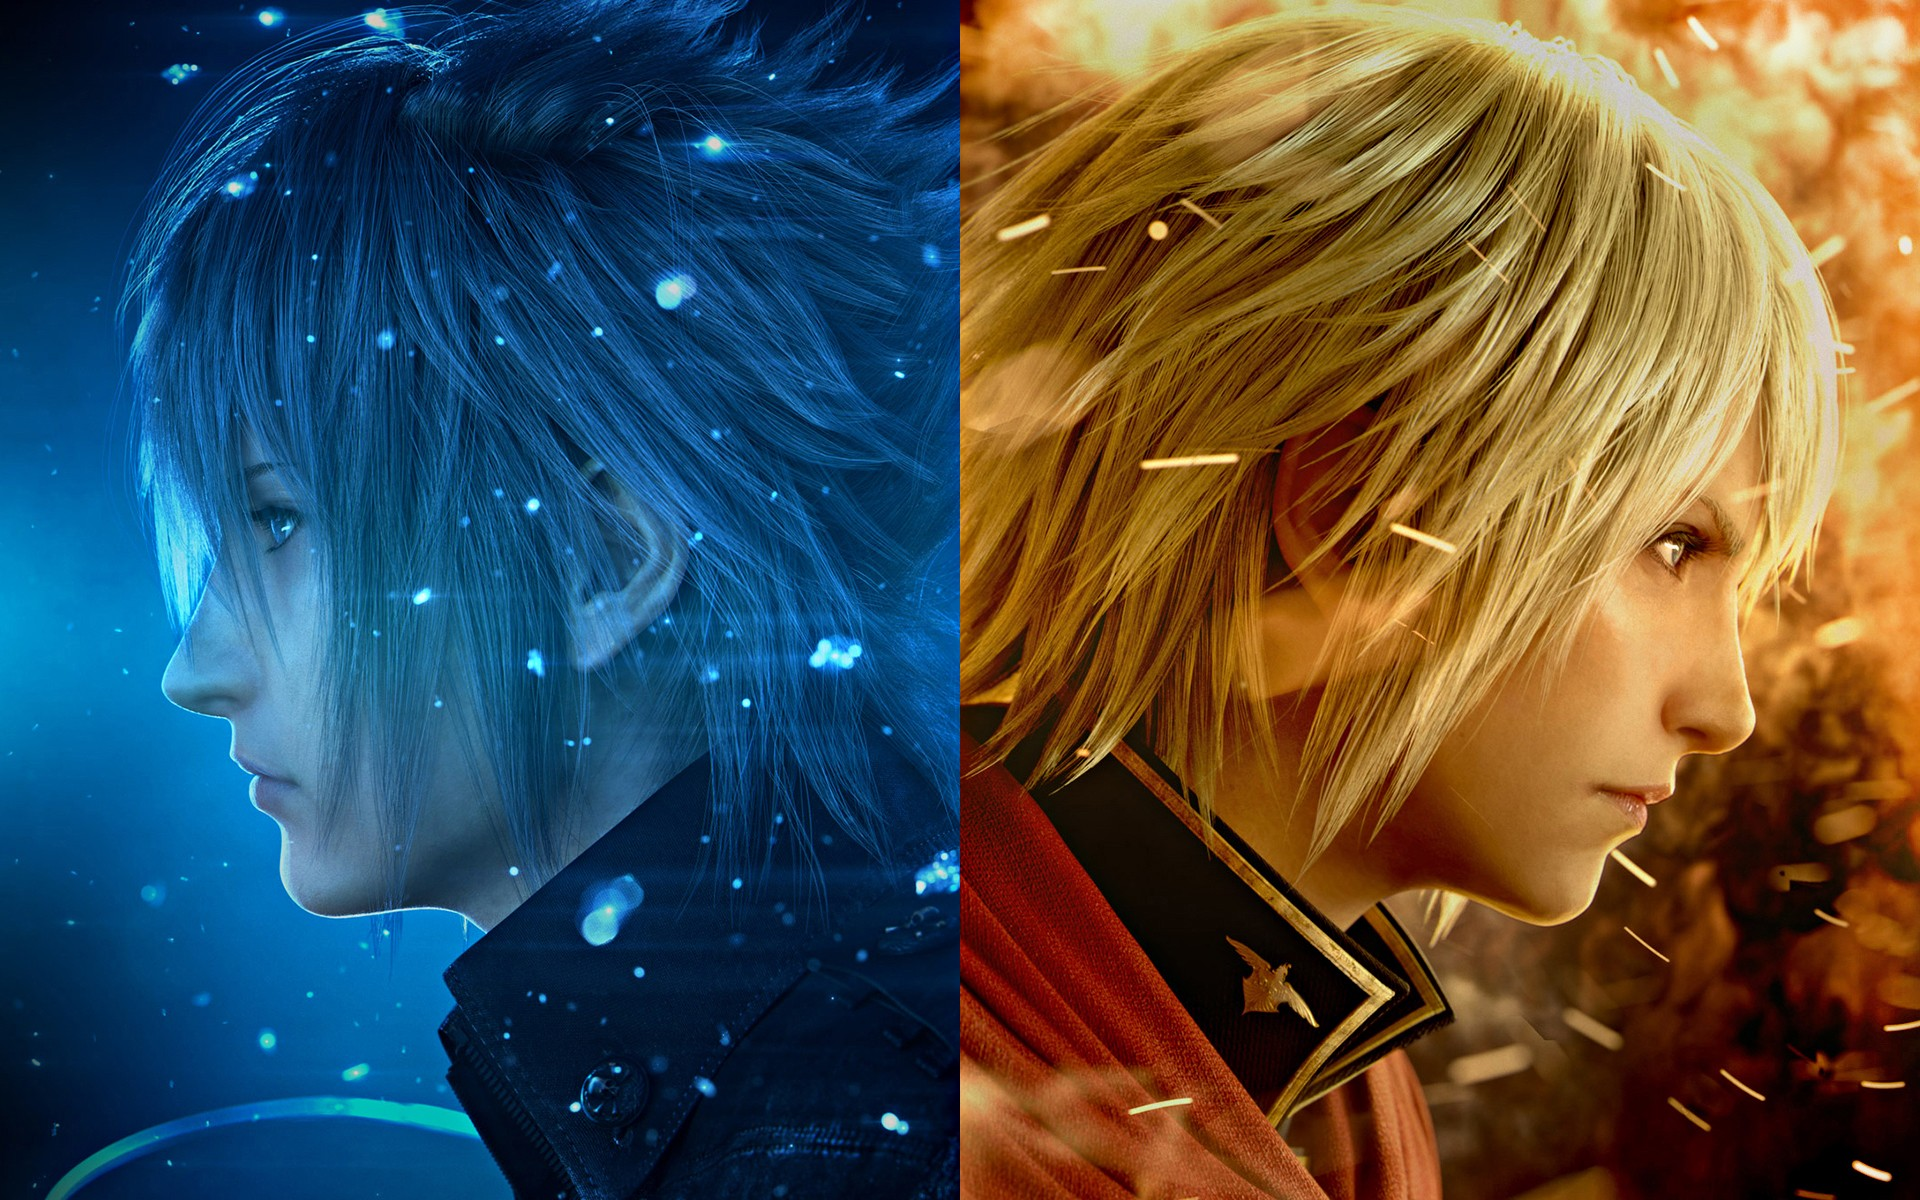 Final Fantasy Type 0 Hd Games 4k Wallpapers Images